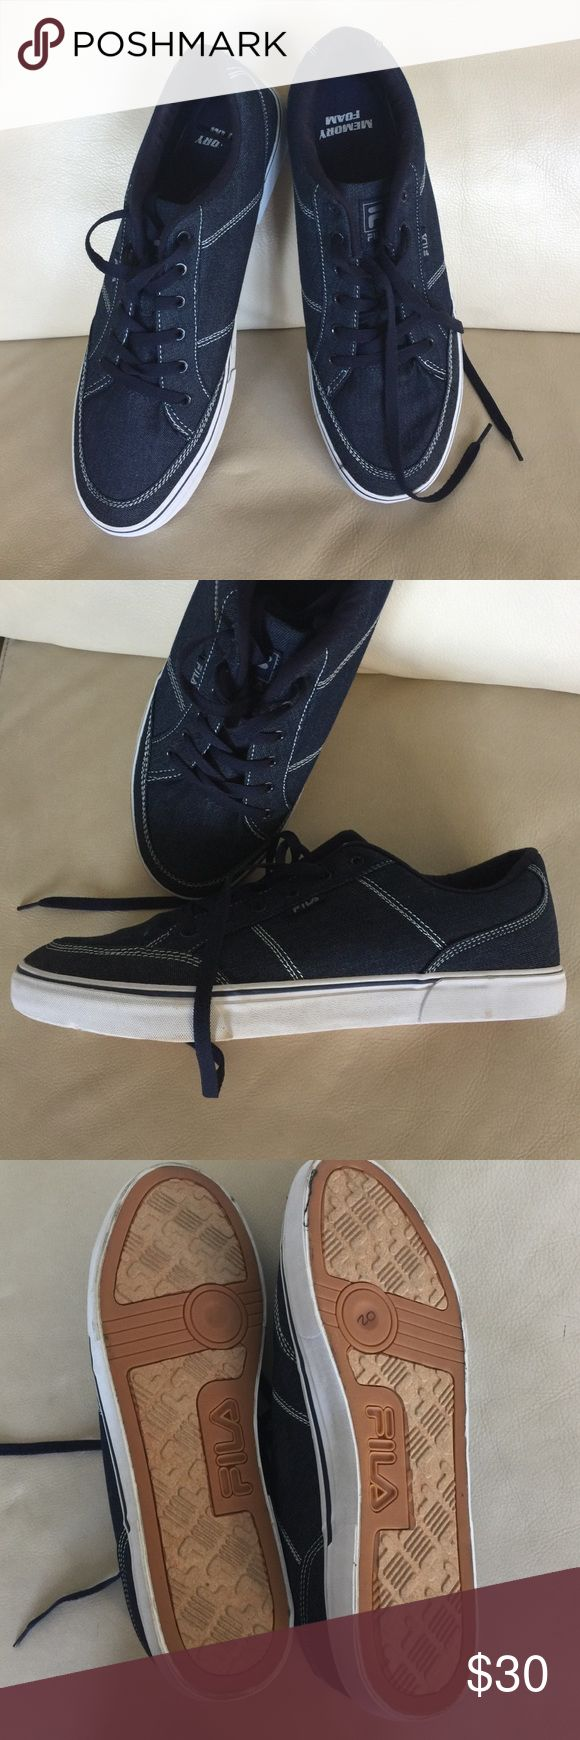 Men's FILA Jean Skater Sneakers w / Memory Foam 13 Worn once for about an hour are these Men's size 13 FILA  Skater Style Sneakers. Jean fabric with white stitching. White rubber soles and blue laces. Super on trend! Fila Shoes Sneakers